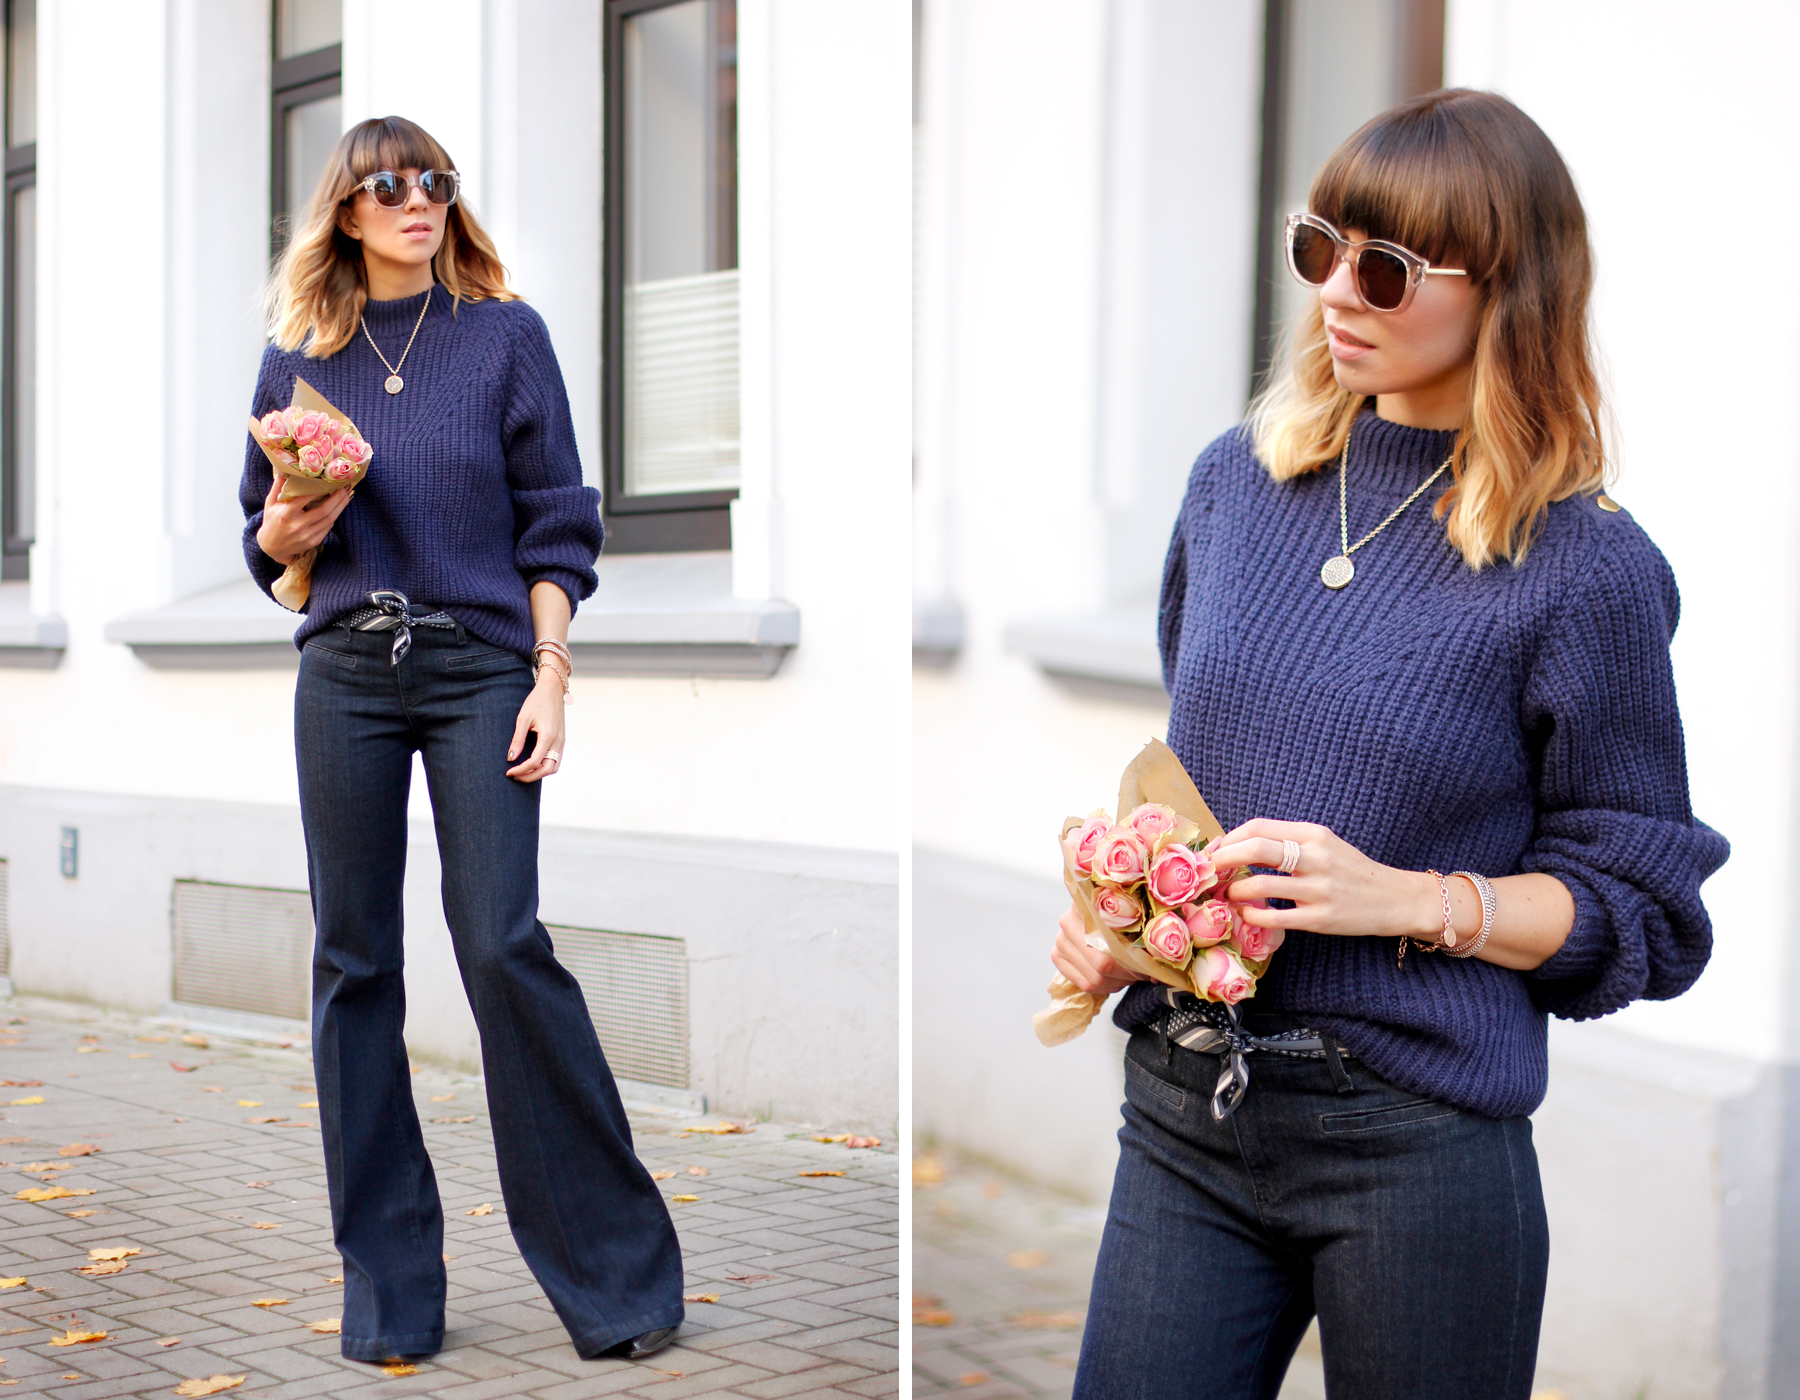 edited knit AG jeans lespecs sunglasses pippa and jean accessories outfit ootd fashionblogger cats & dogs ricarda schernus blue outfit sailor french blog 2